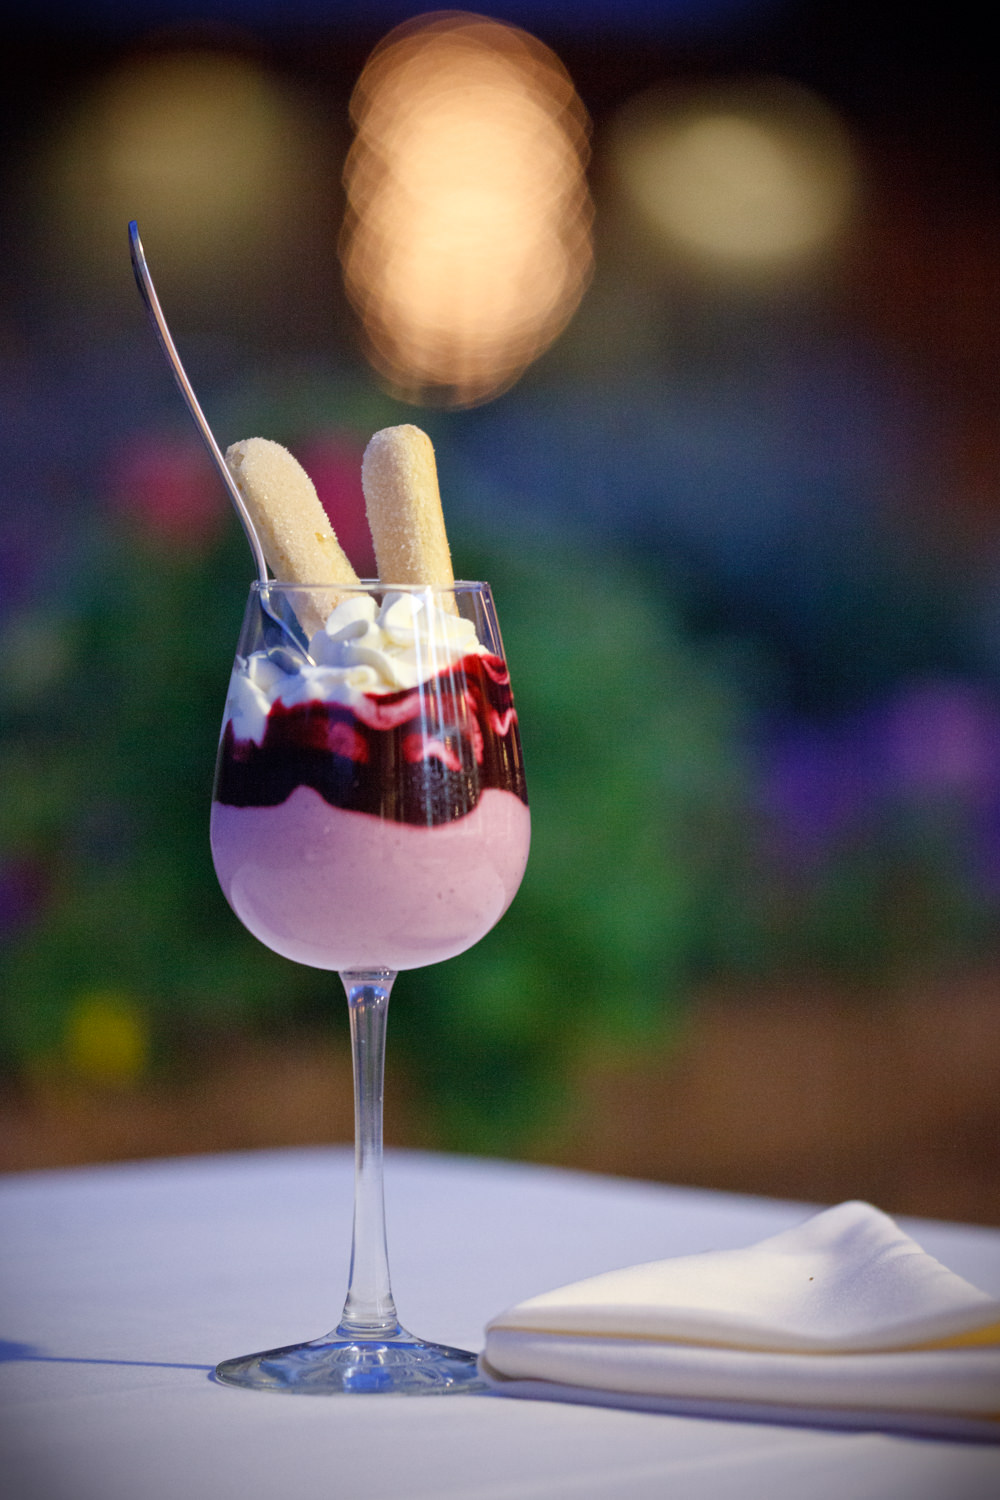 A whipped mousse dessert topped with whipped cream and lady fingers is served in a wine glass in a photo be Vermont food photographer Stina Booth